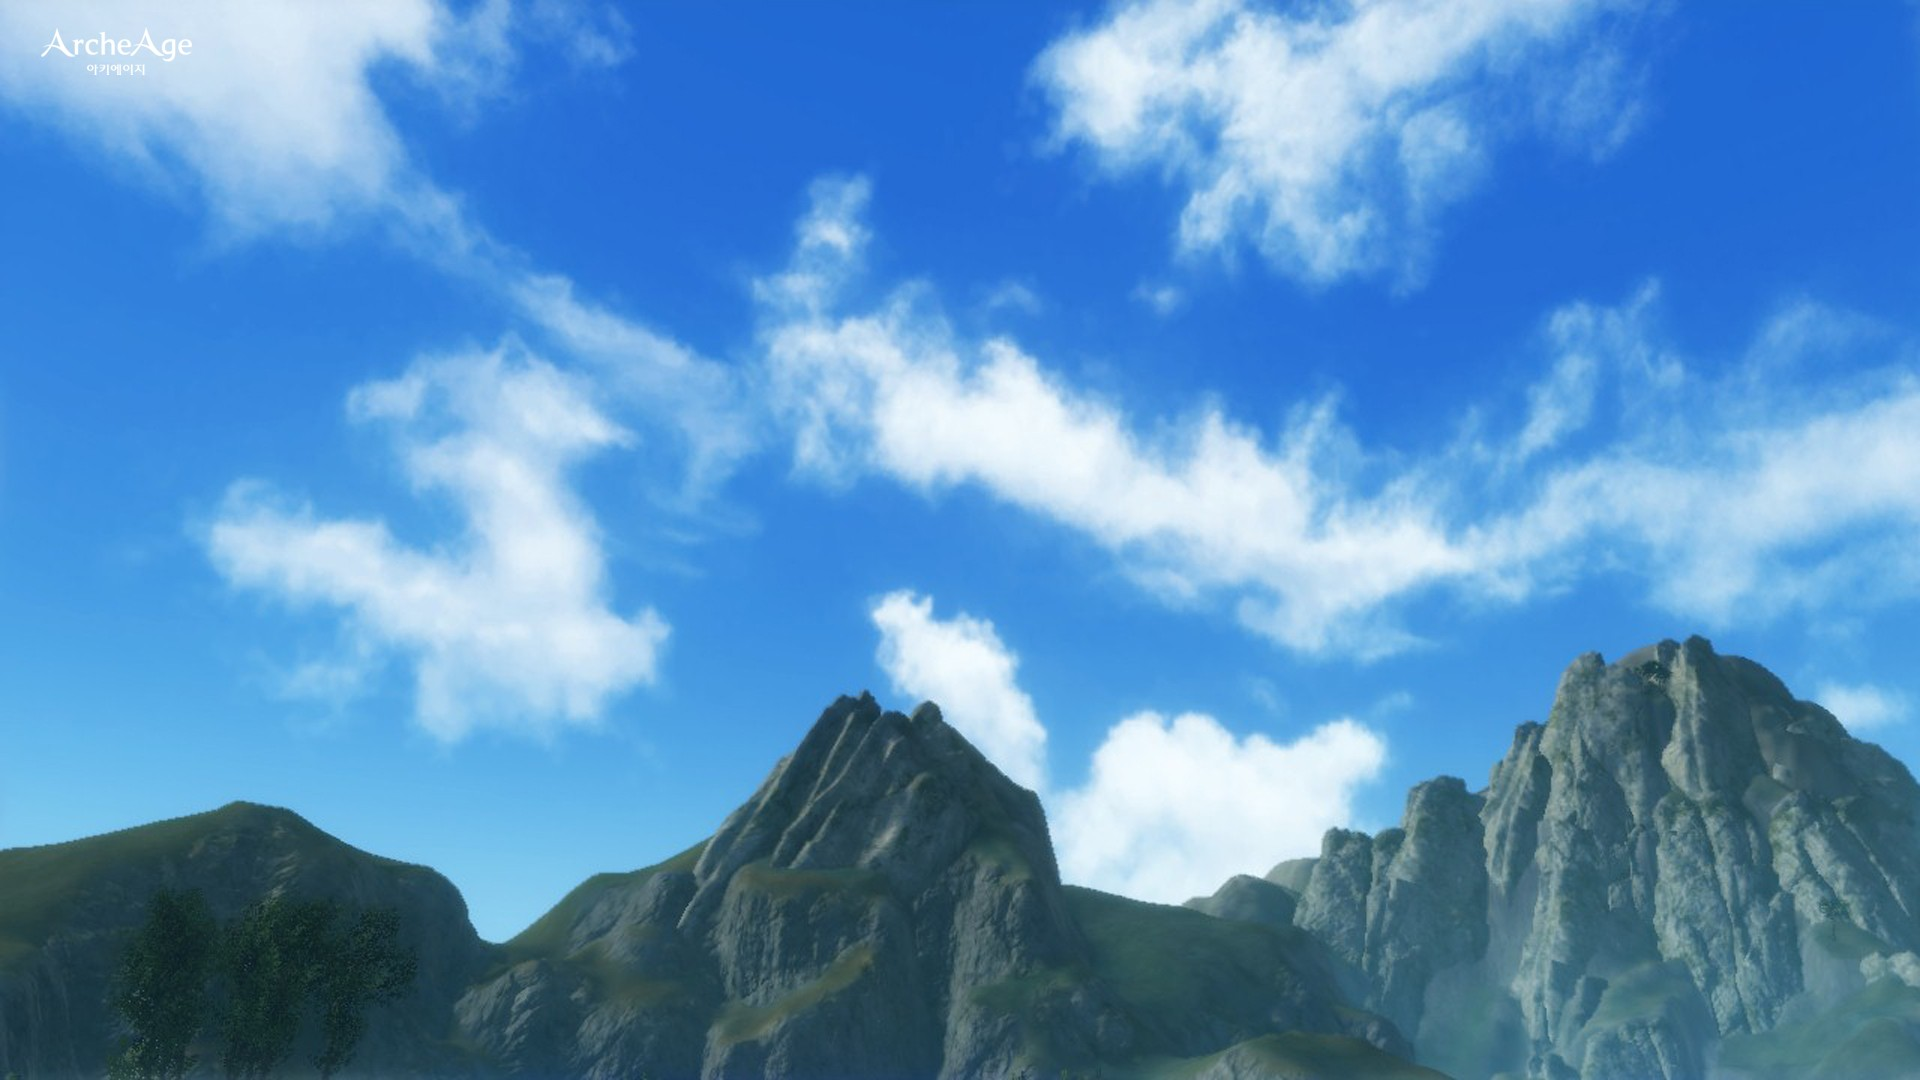 Mmorpg Com Archeage Galleries